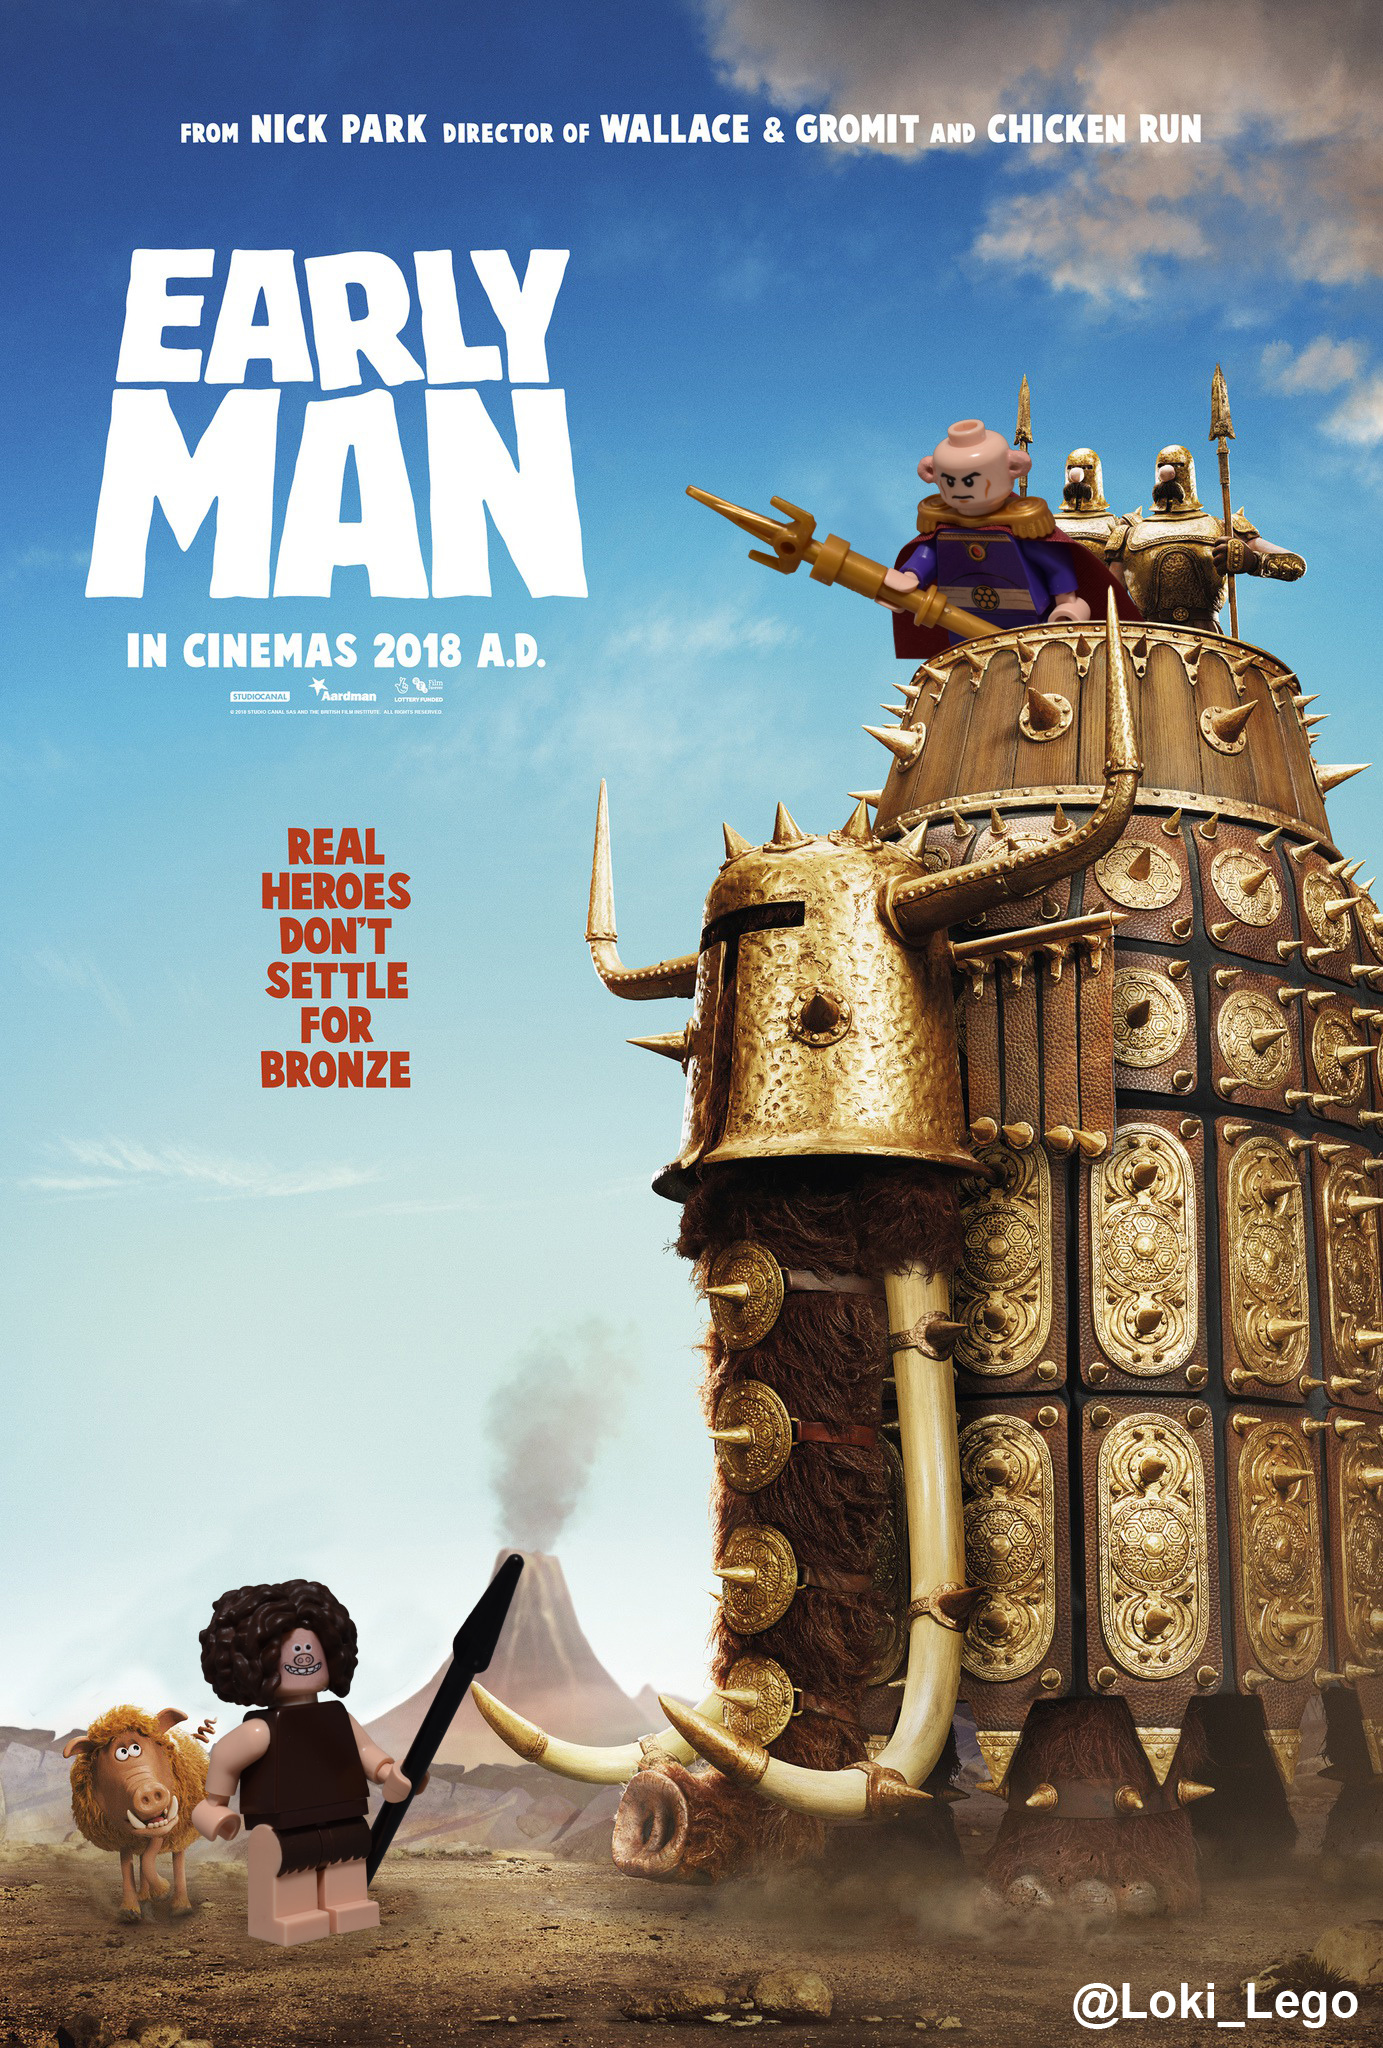 Early Man Poster recreated in LEGO